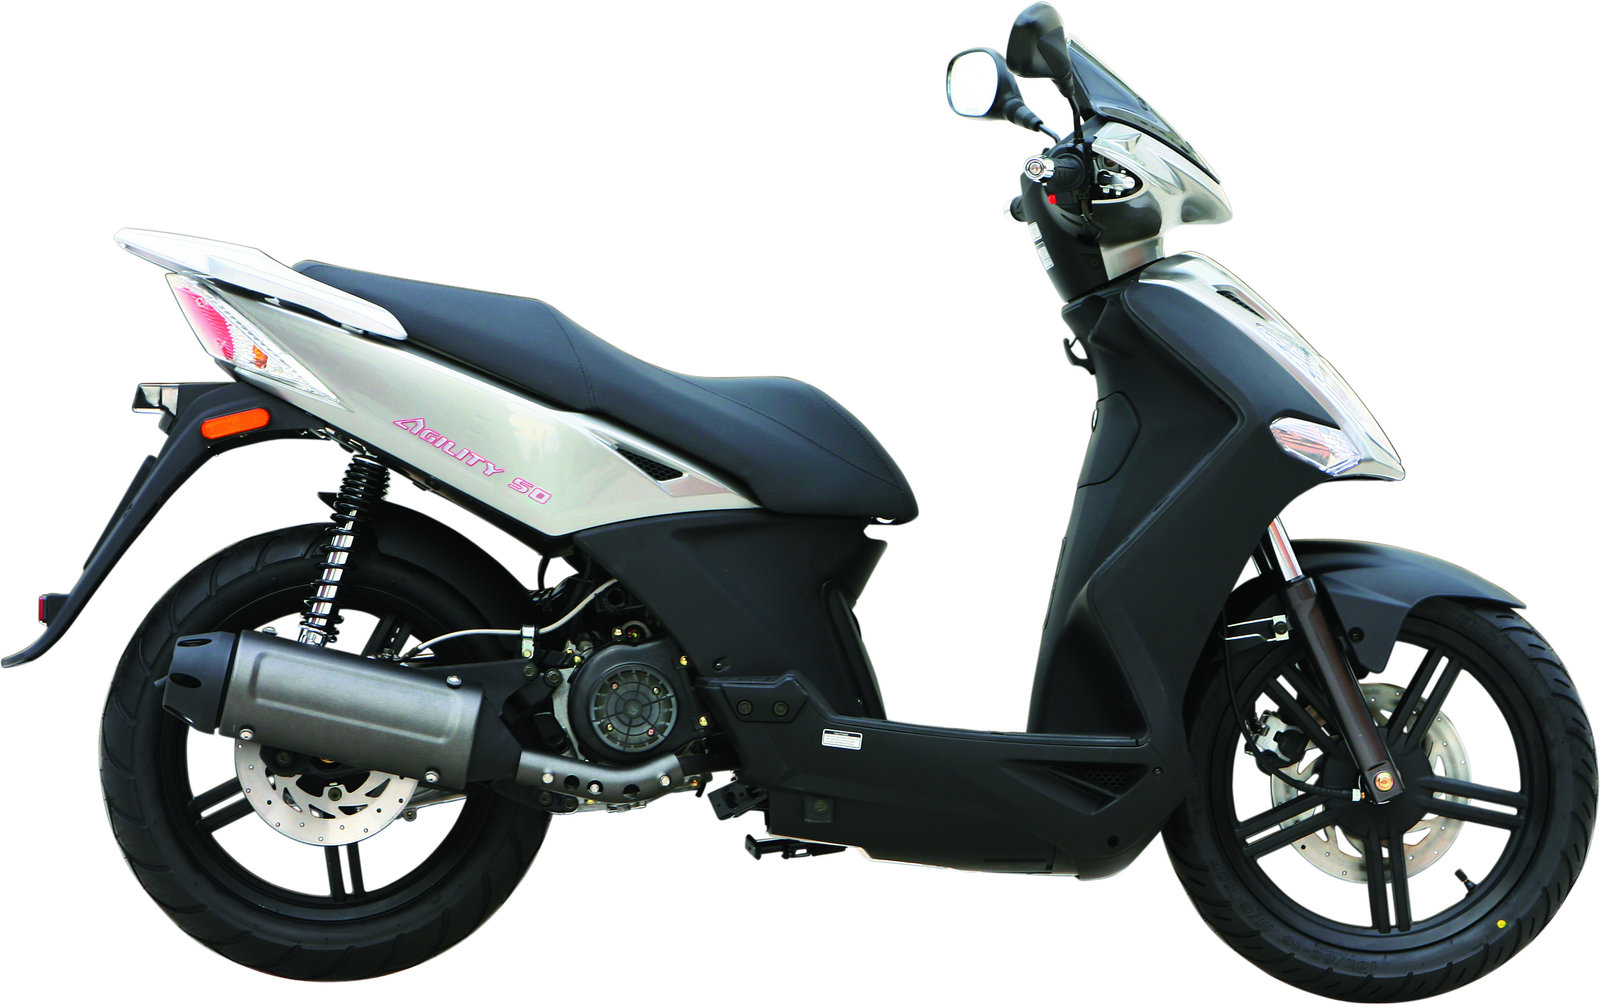 Kymco Agility 50 2007 images #100891